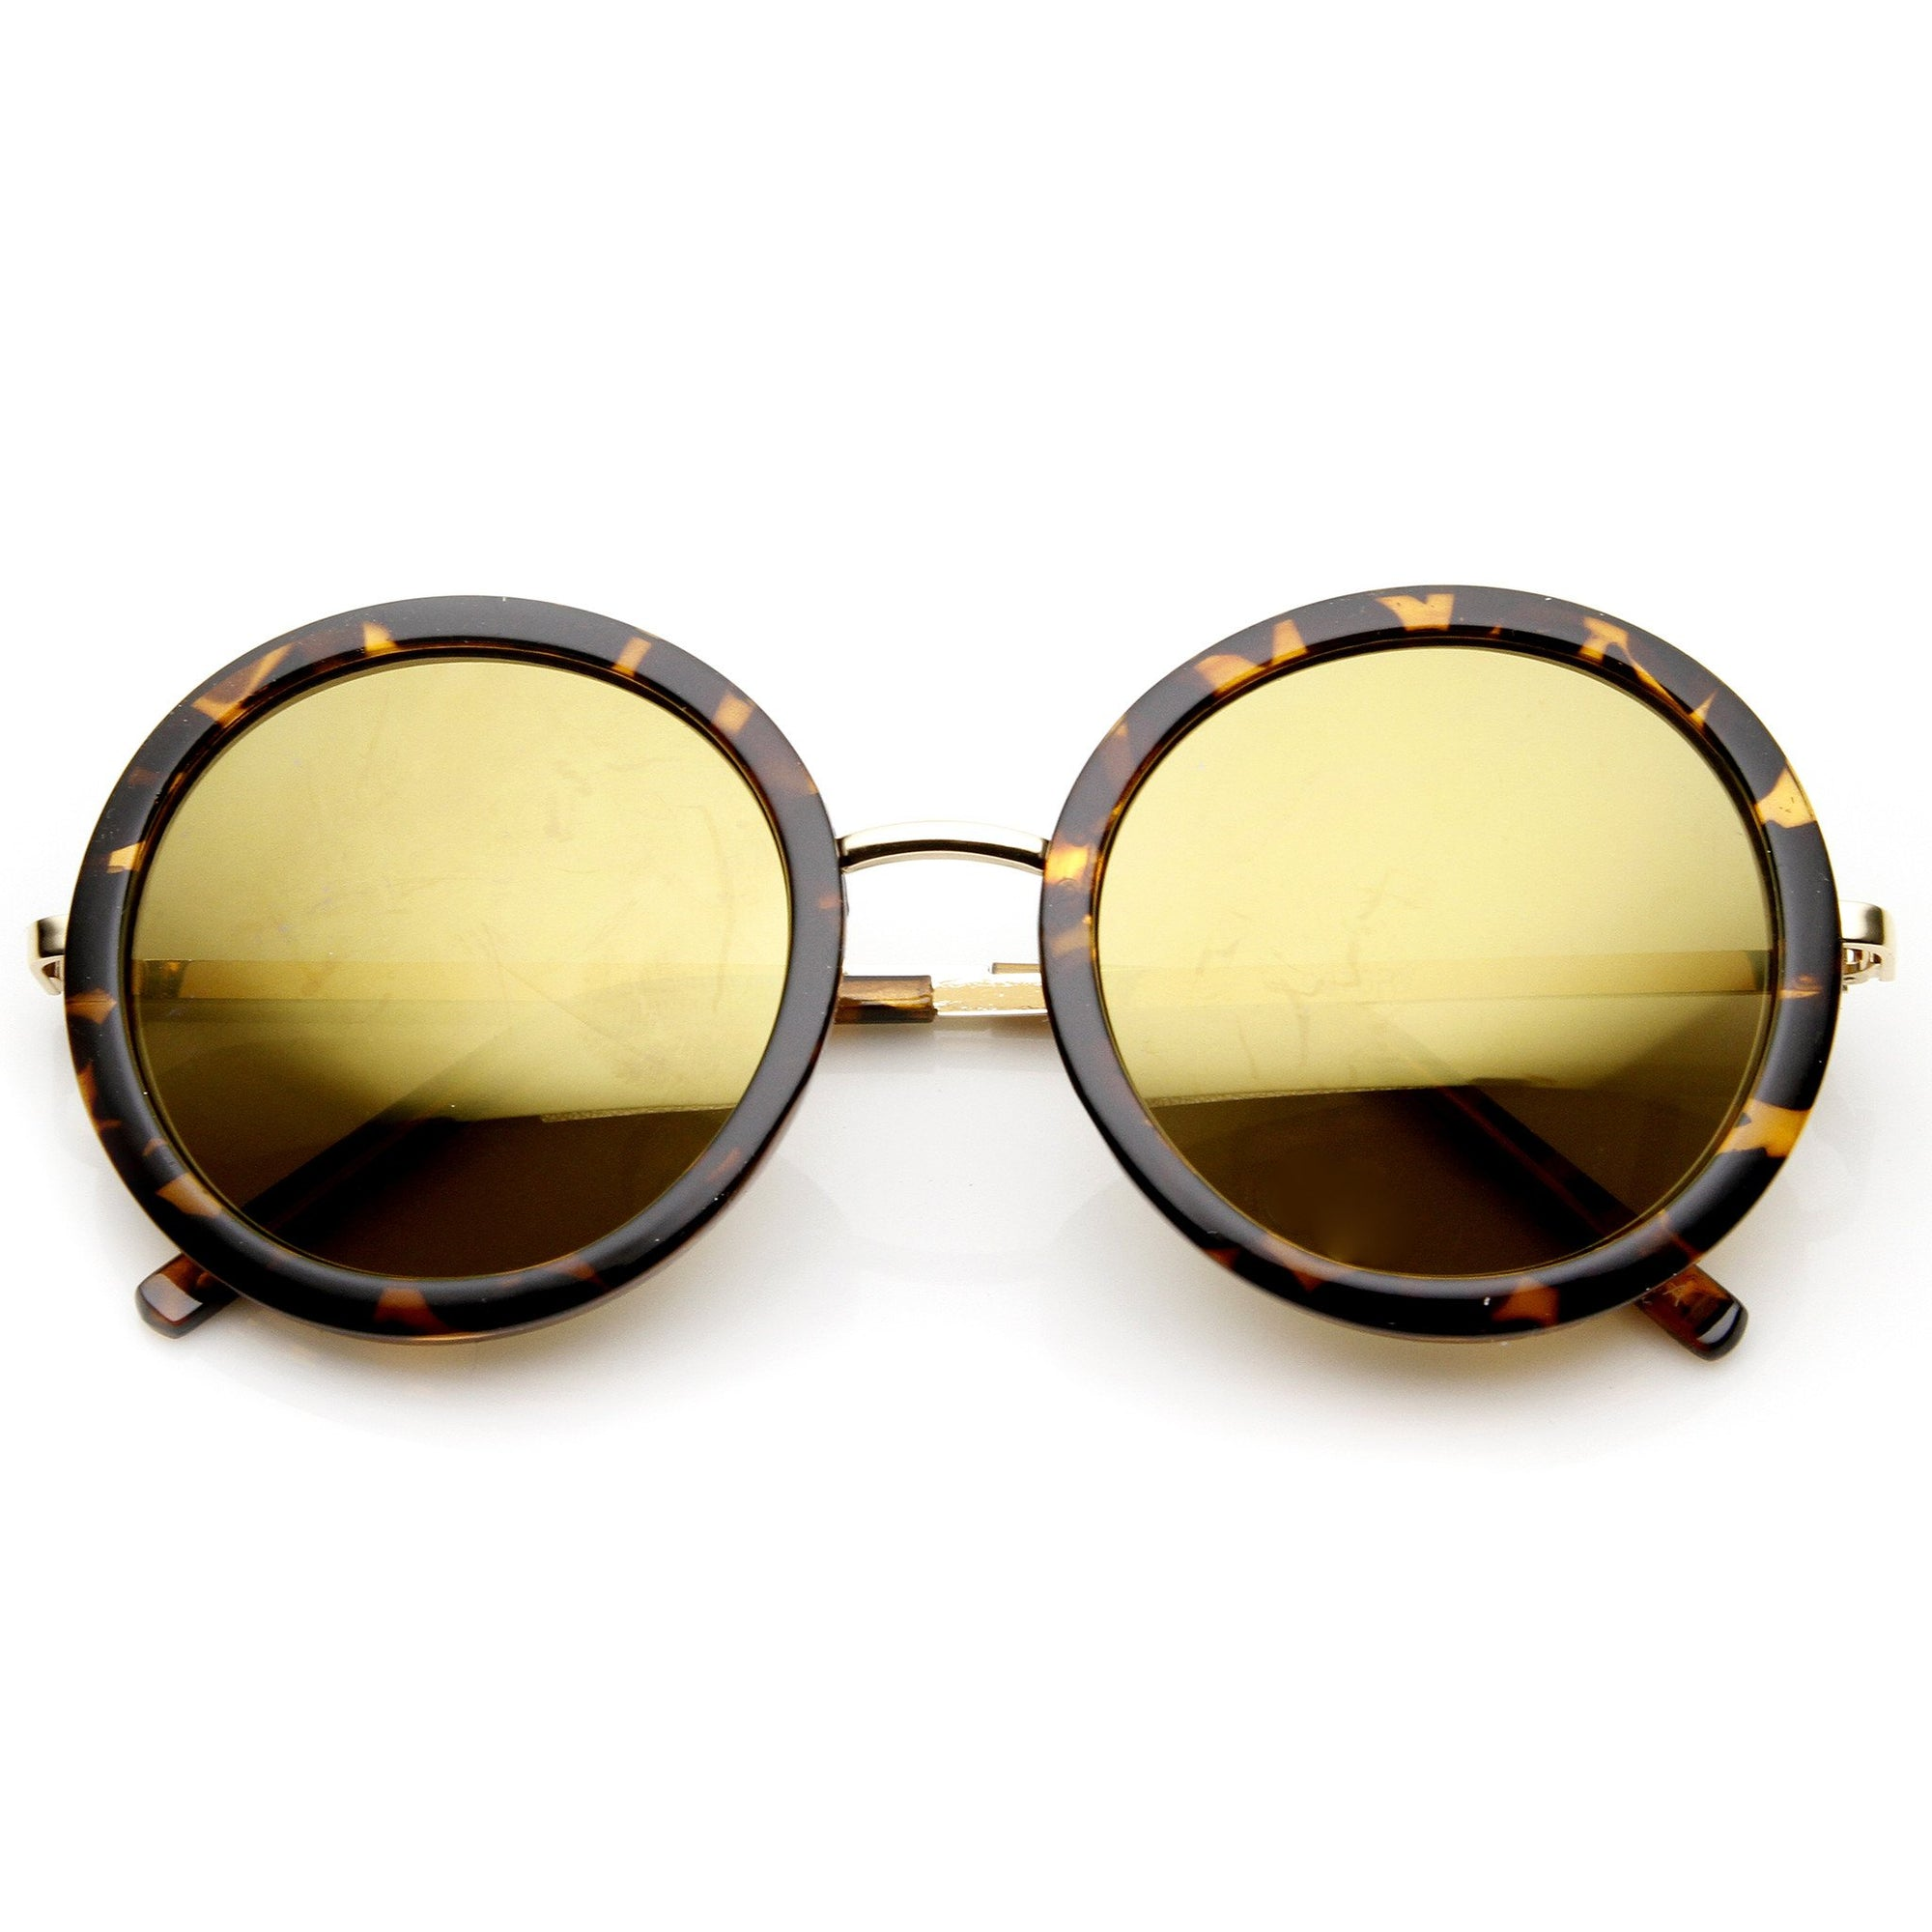 46a09a5cd0a Women s Glam Mirrored Lens Round Fashion Sunglasses 9226